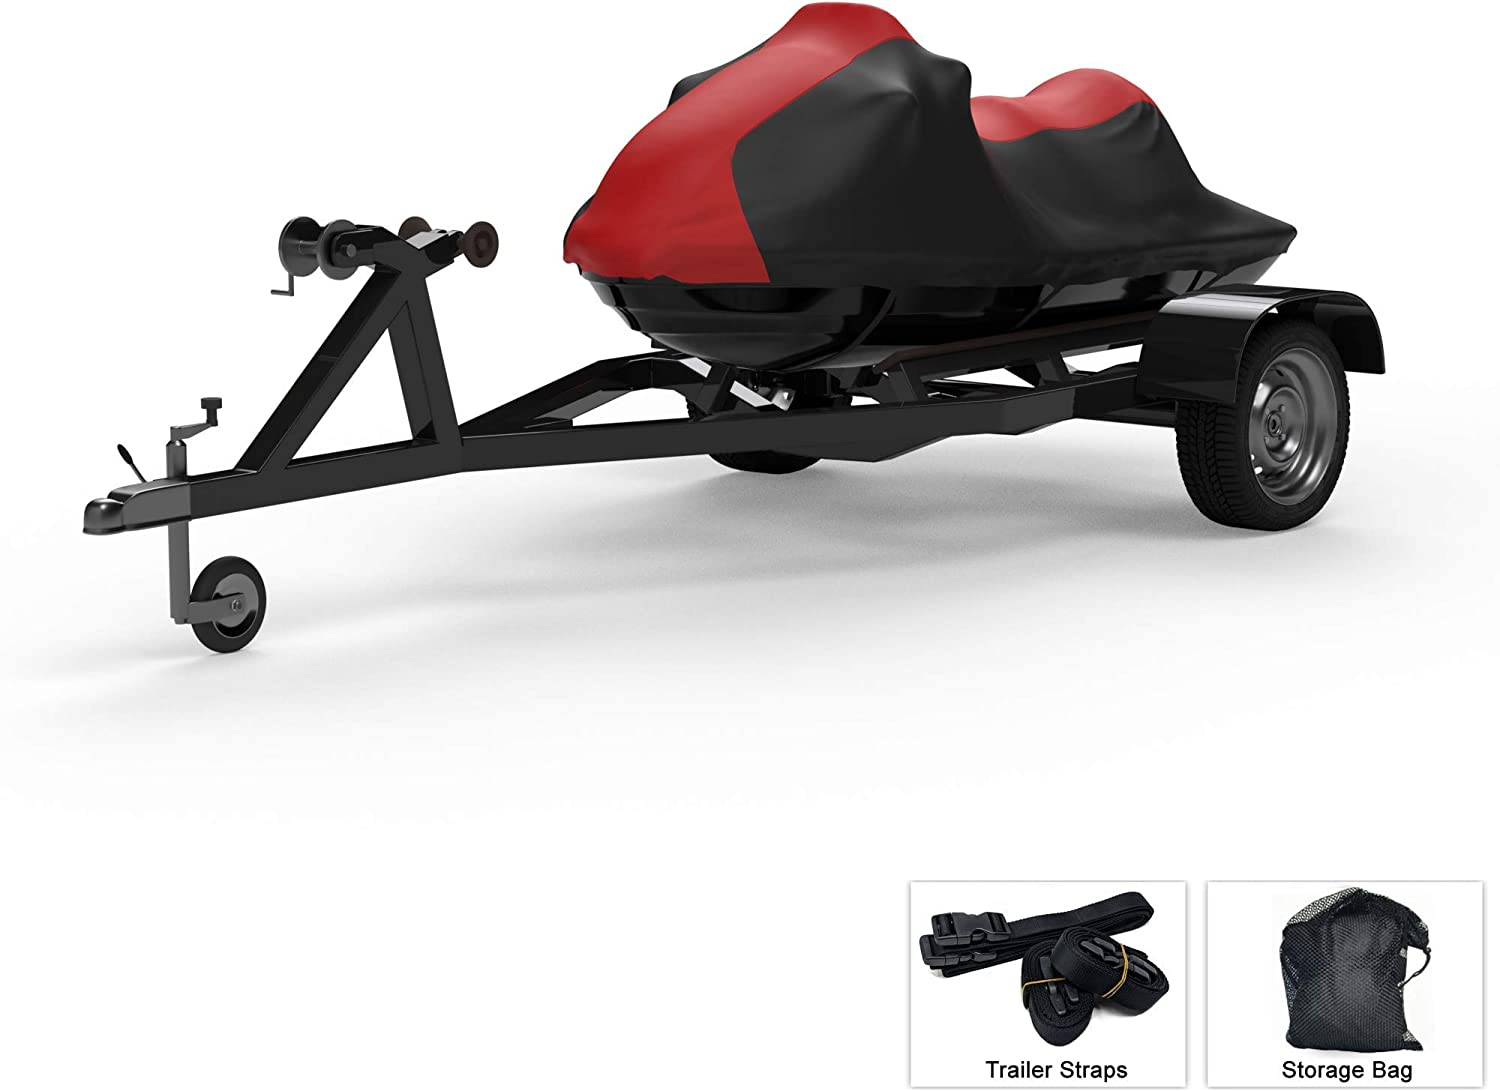 Includes Trailer Straps and Storage Bag Protects from Rain Multiple Color Options UV Rays Weatherproof Jet Ski Covers for SEA DOO GTX is 215 2010-2013 Trailerable Sun and More All Weather